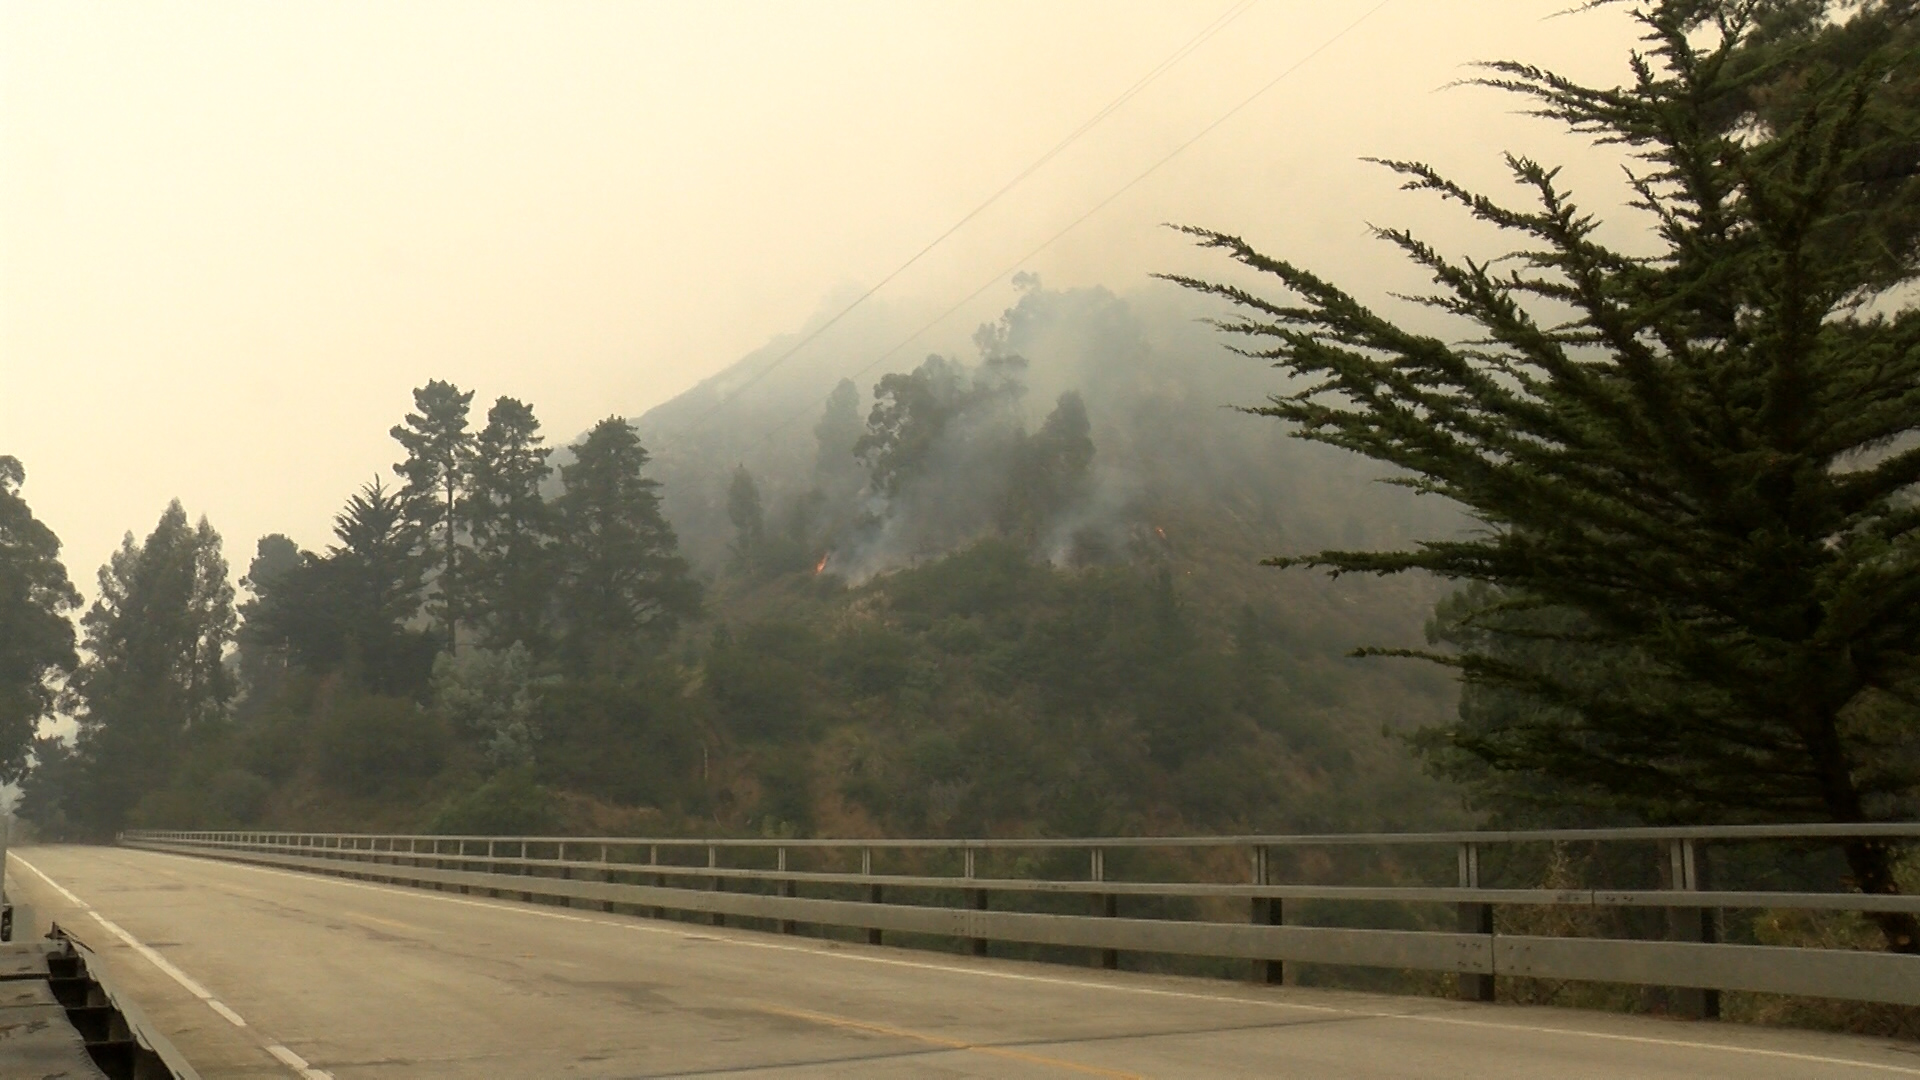 Dolan Fire continues to burn over 8,000 acres so far south of Big Sur